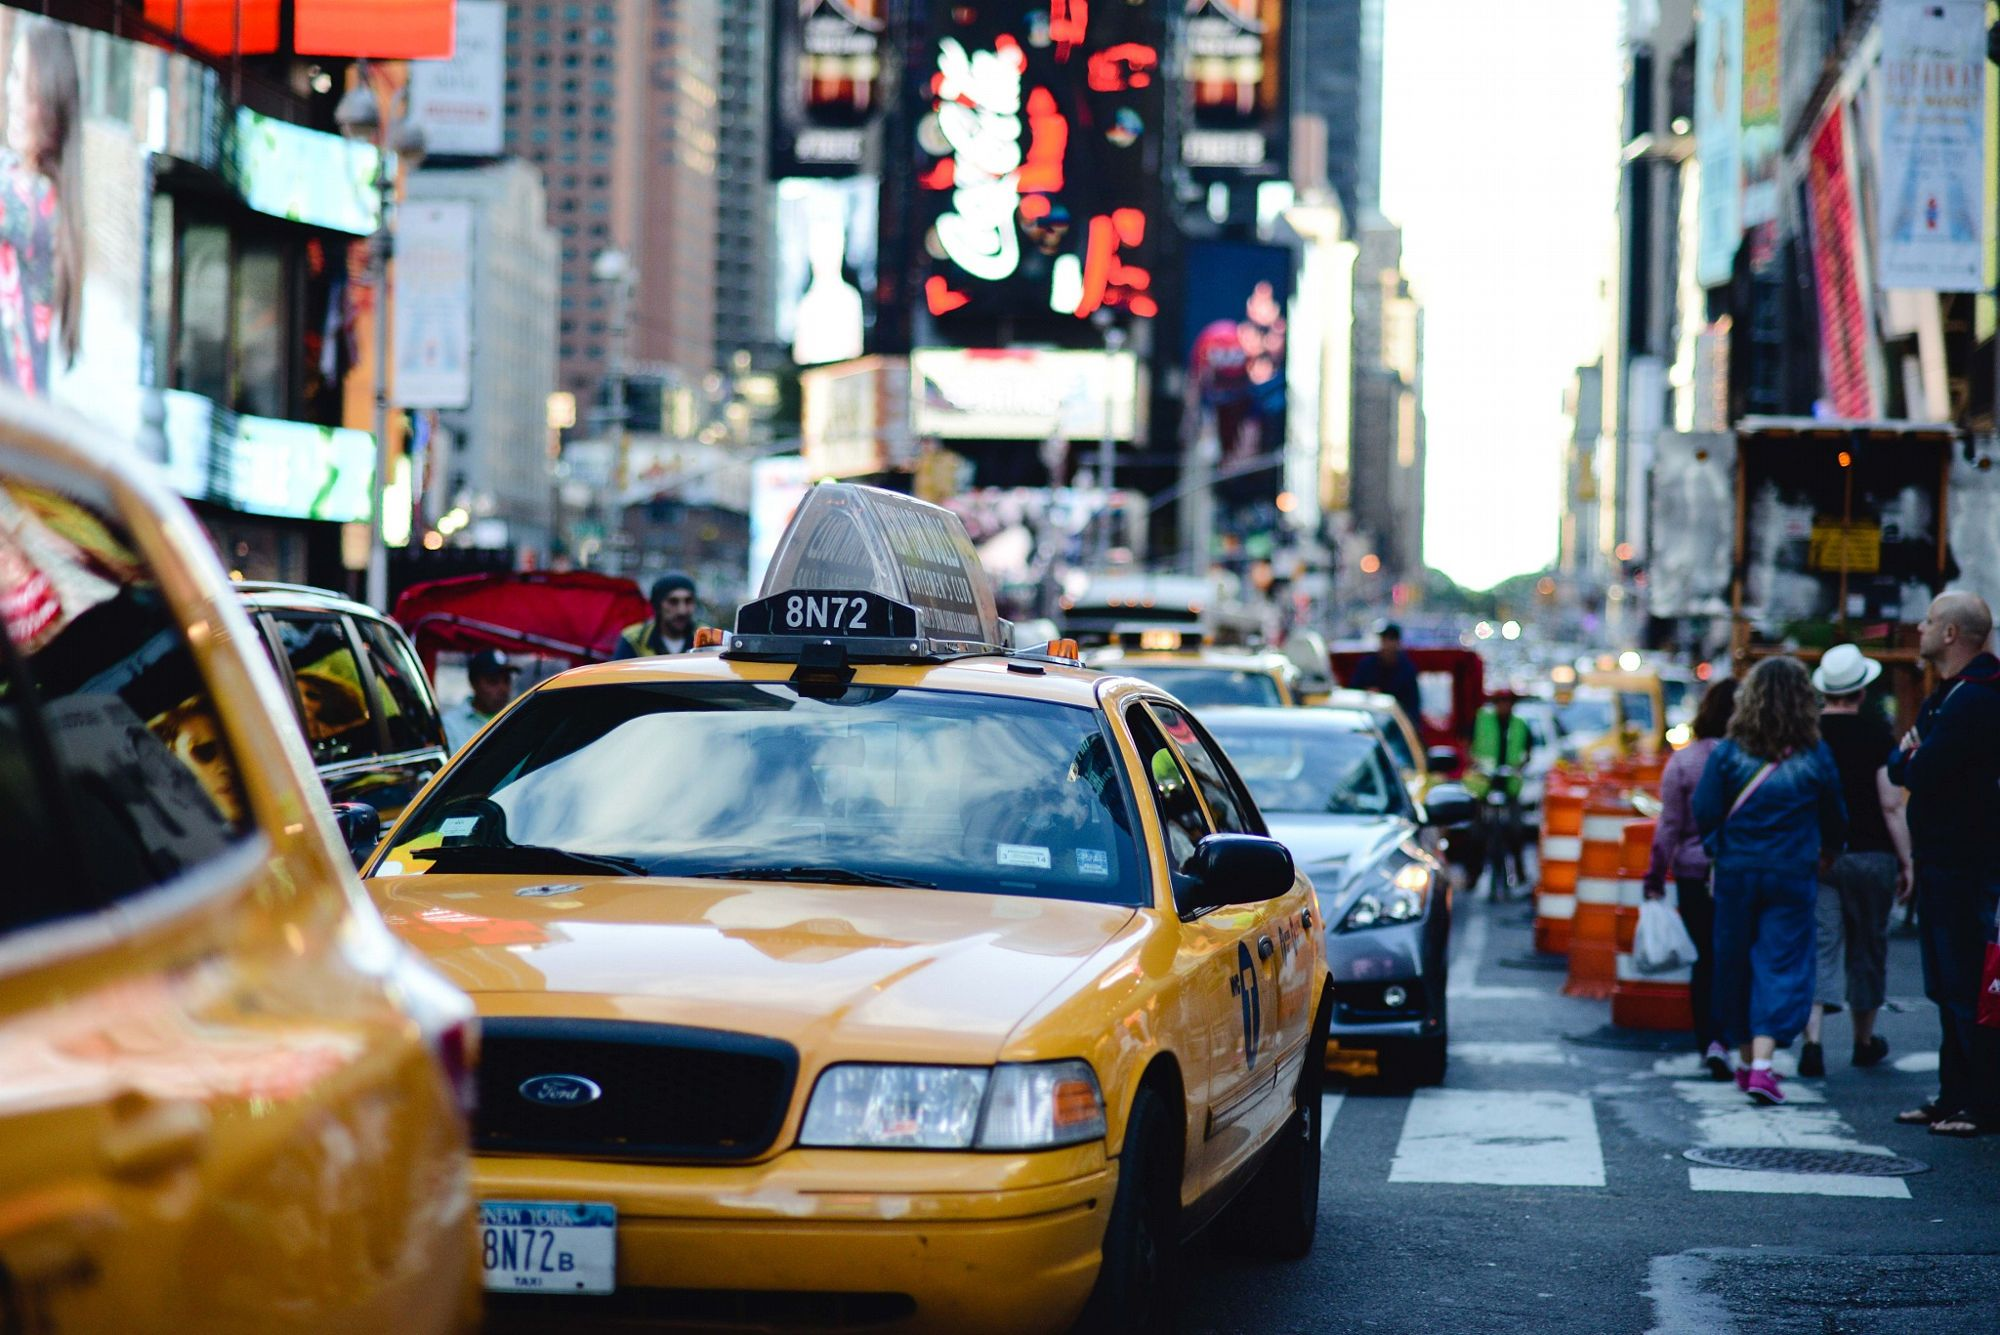 Times Square traffic by Francesca Russell on 500px